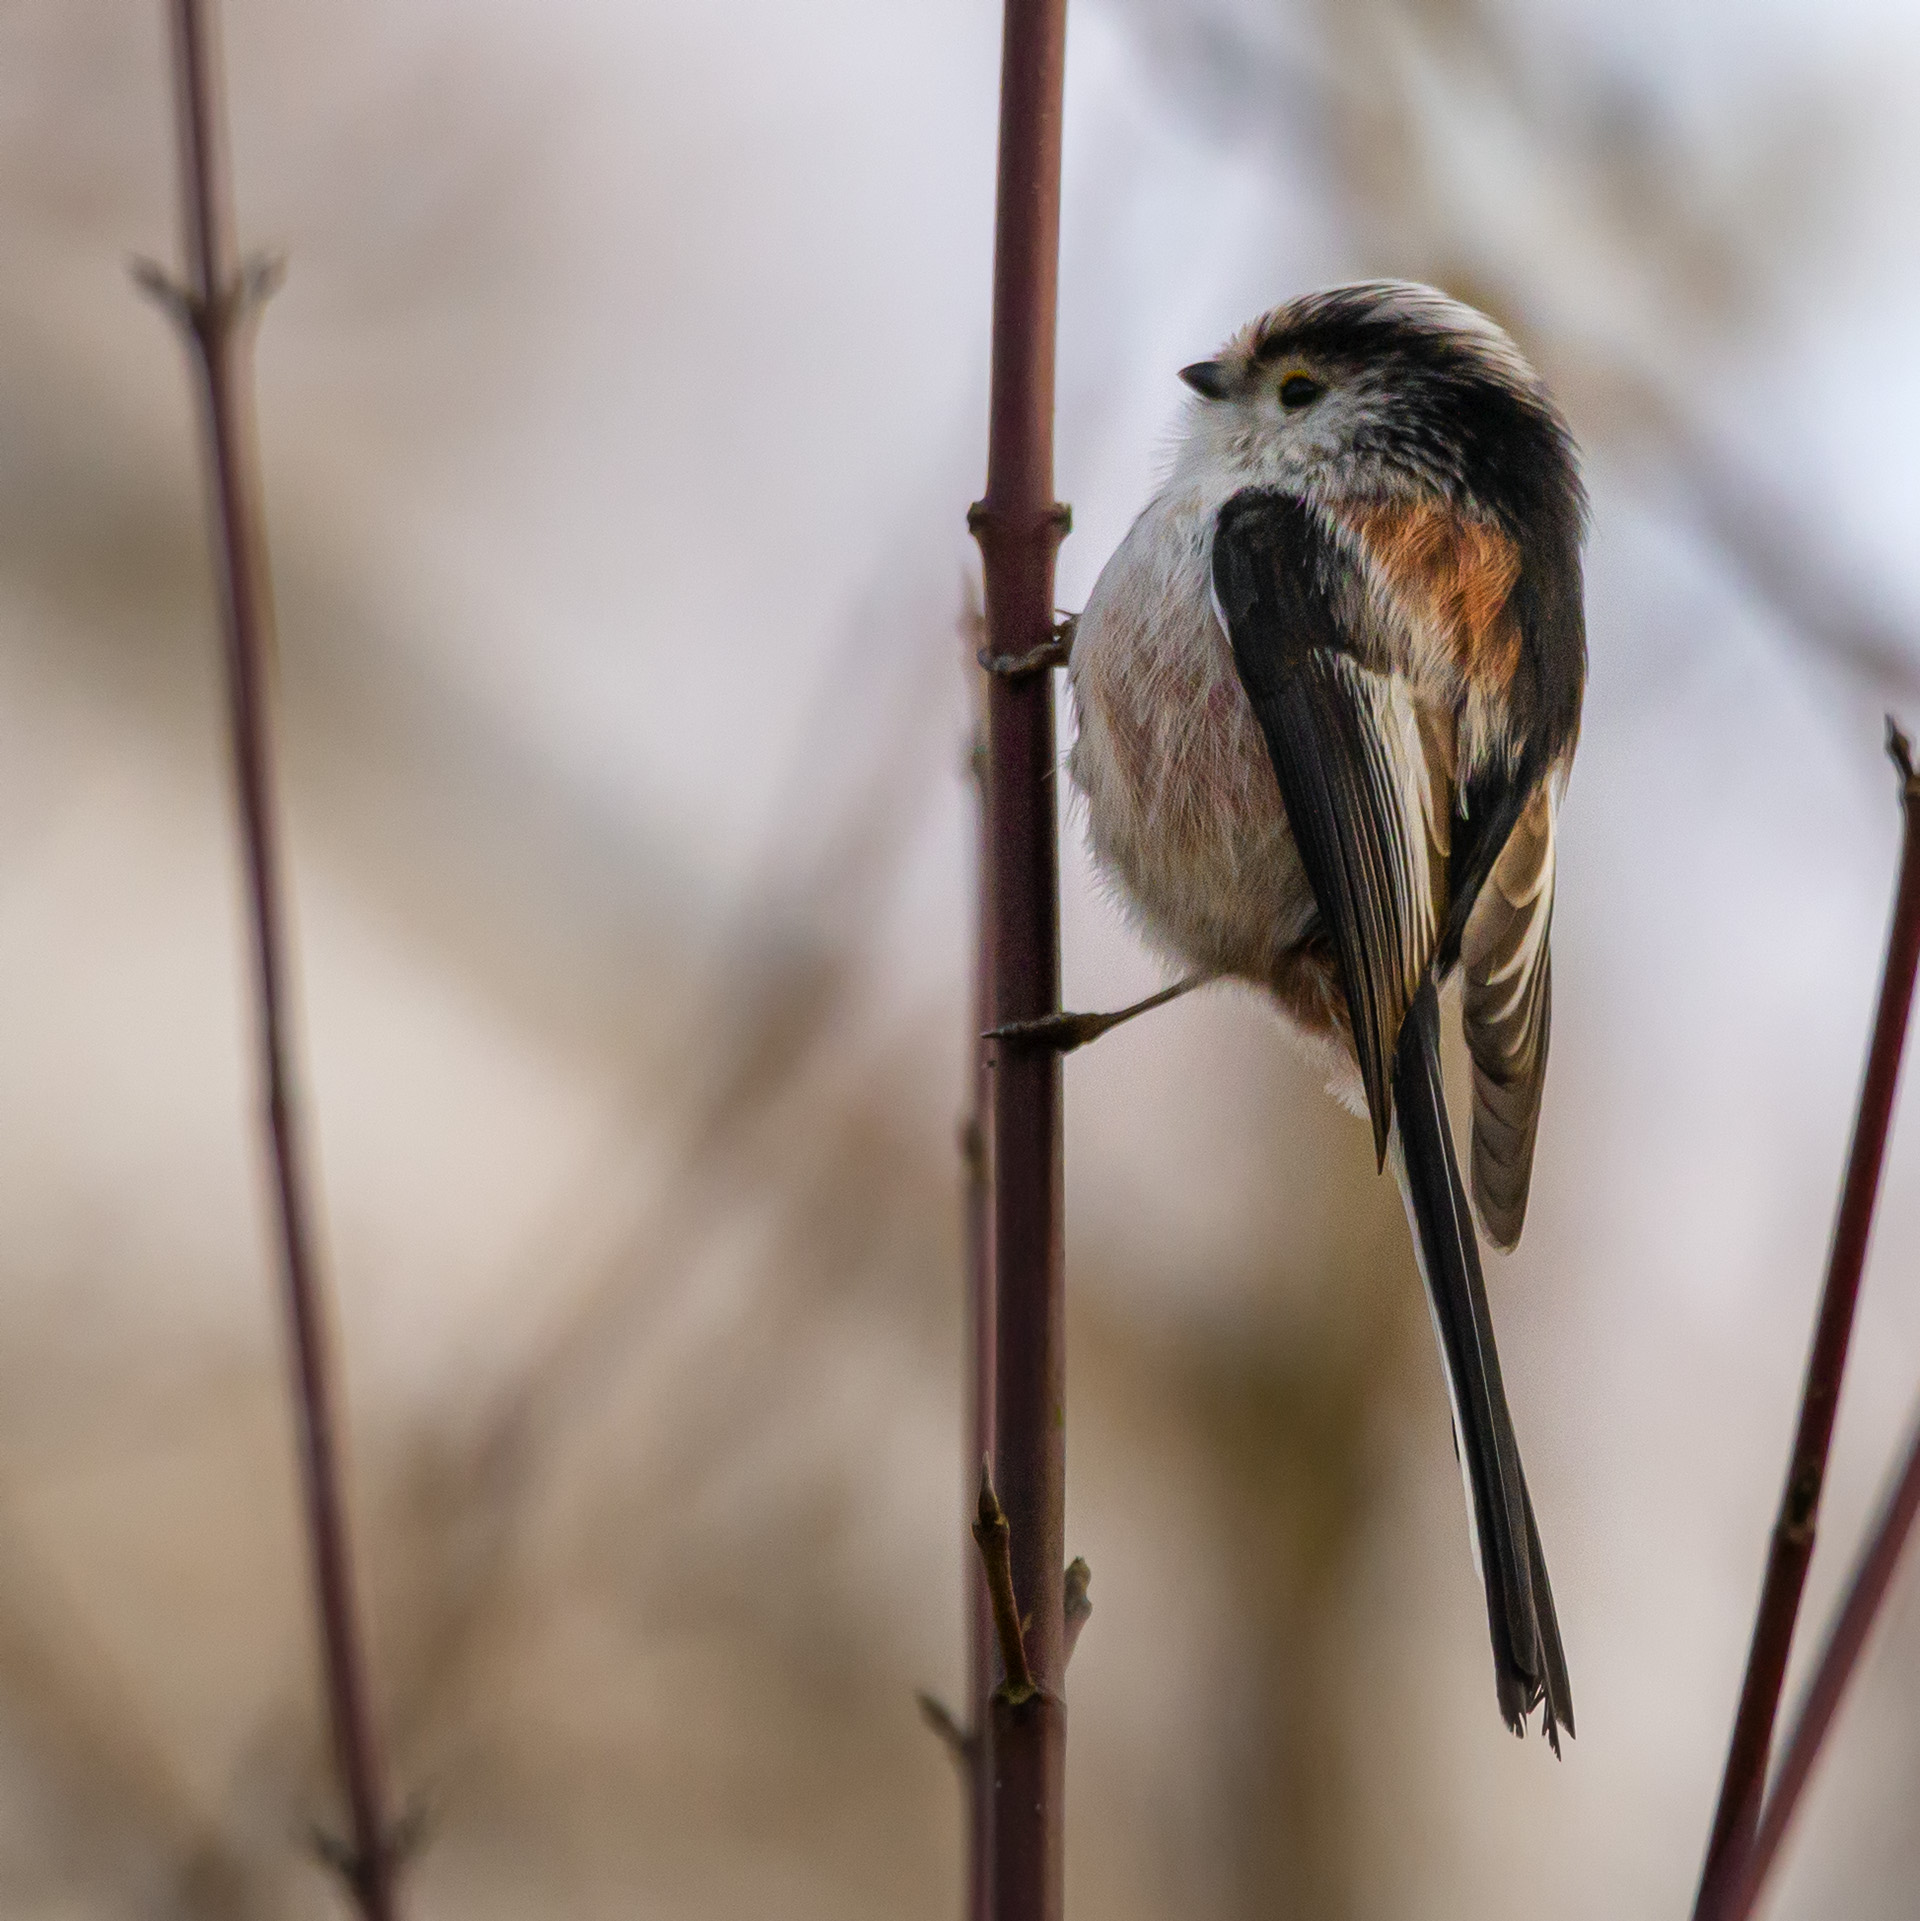 Staartmees (Long-tailed Tit, Aegithalos caudatus)